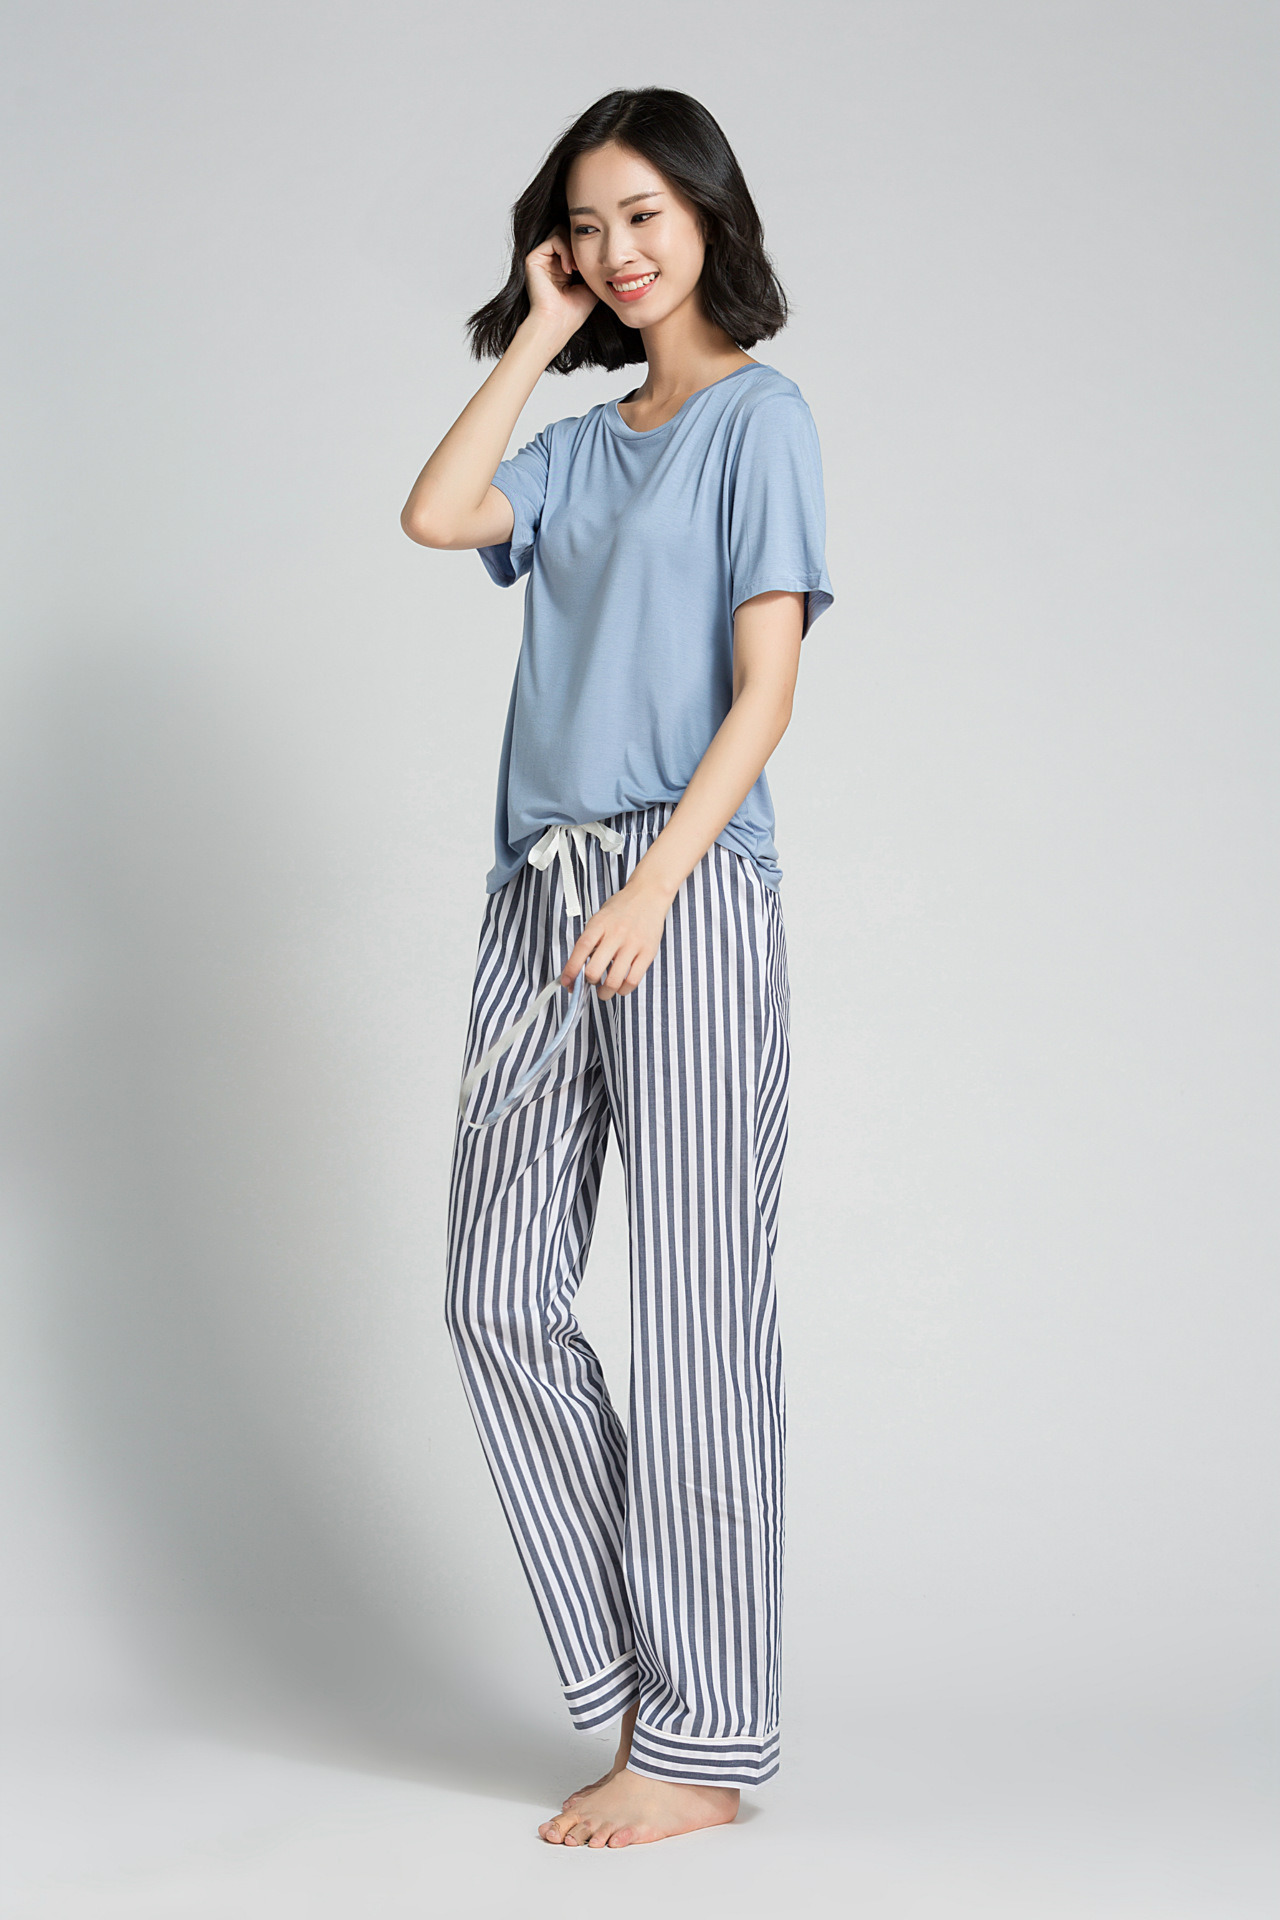 da2a3968c4b0d China High Quality Women Modal Sleepwear Suit Short Sleeves Pajamas T-Shirt  Dress - China Pajamas, Nightwear